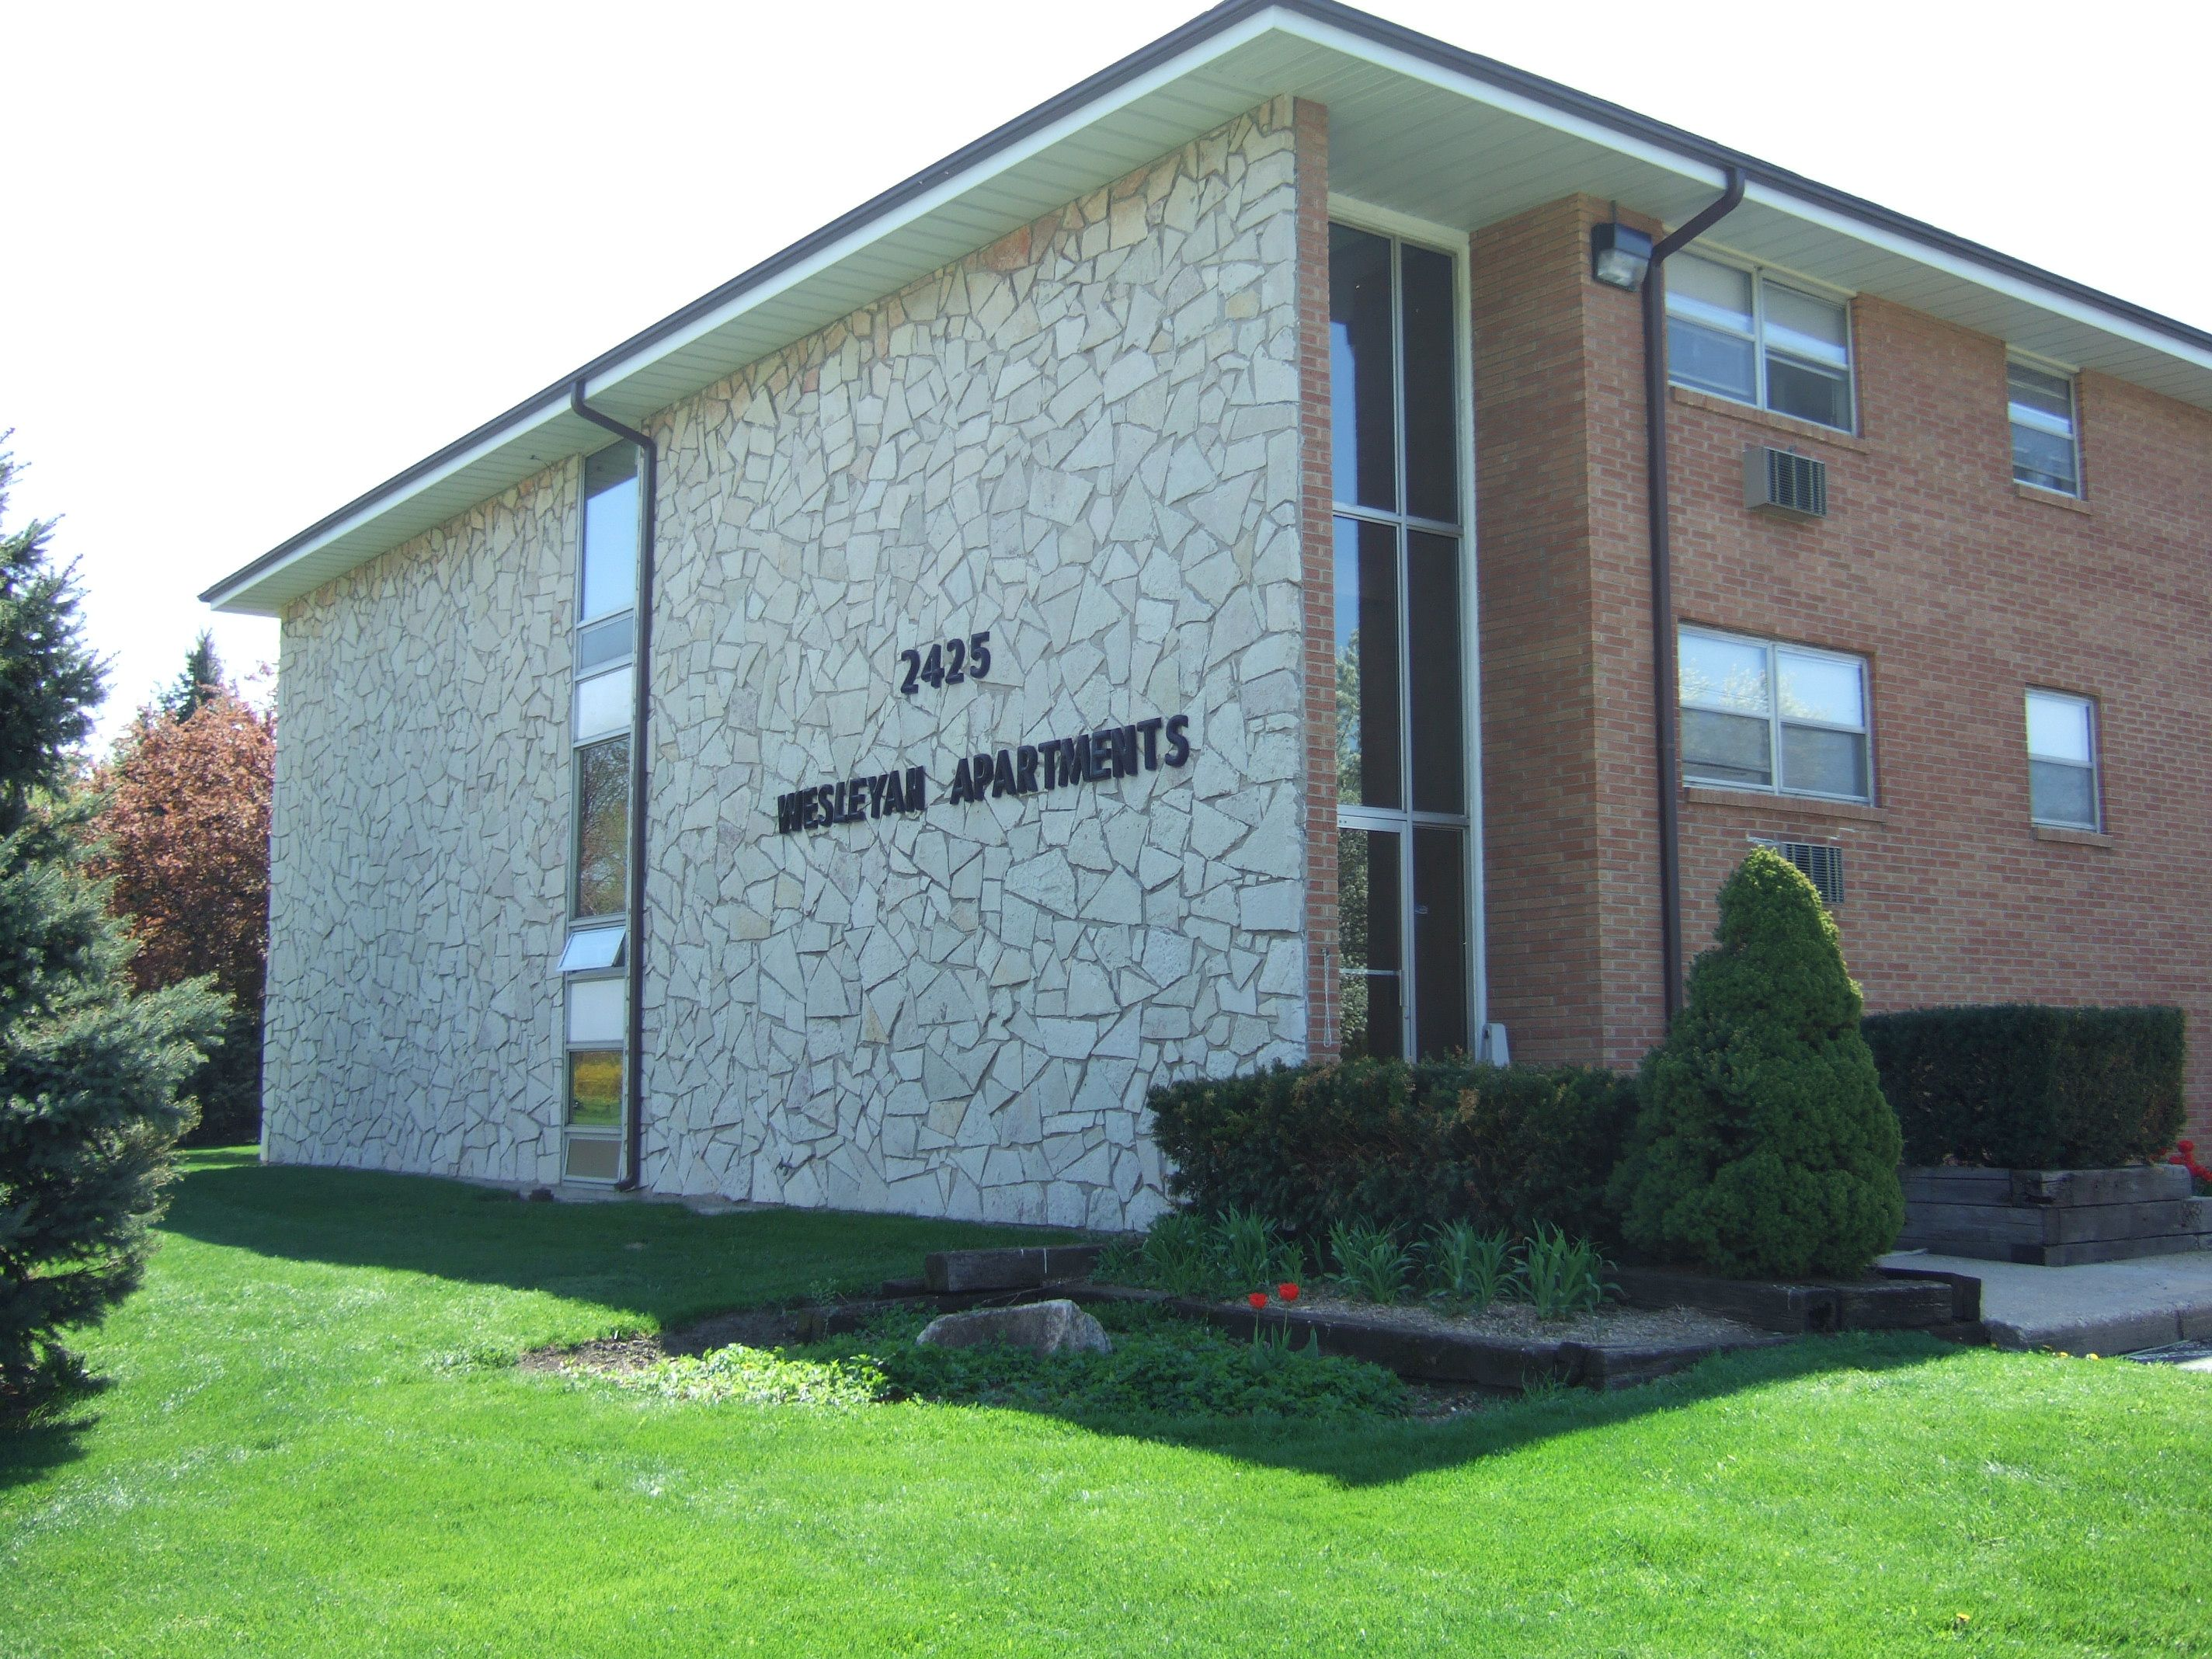 2425 Wesleyan Ave Rockford Il 61108 Large One Bedroom Apartments For Rent Onsite Coin Operated Laundry One Bedroom Apartment Apartments For Rent One Bedroom